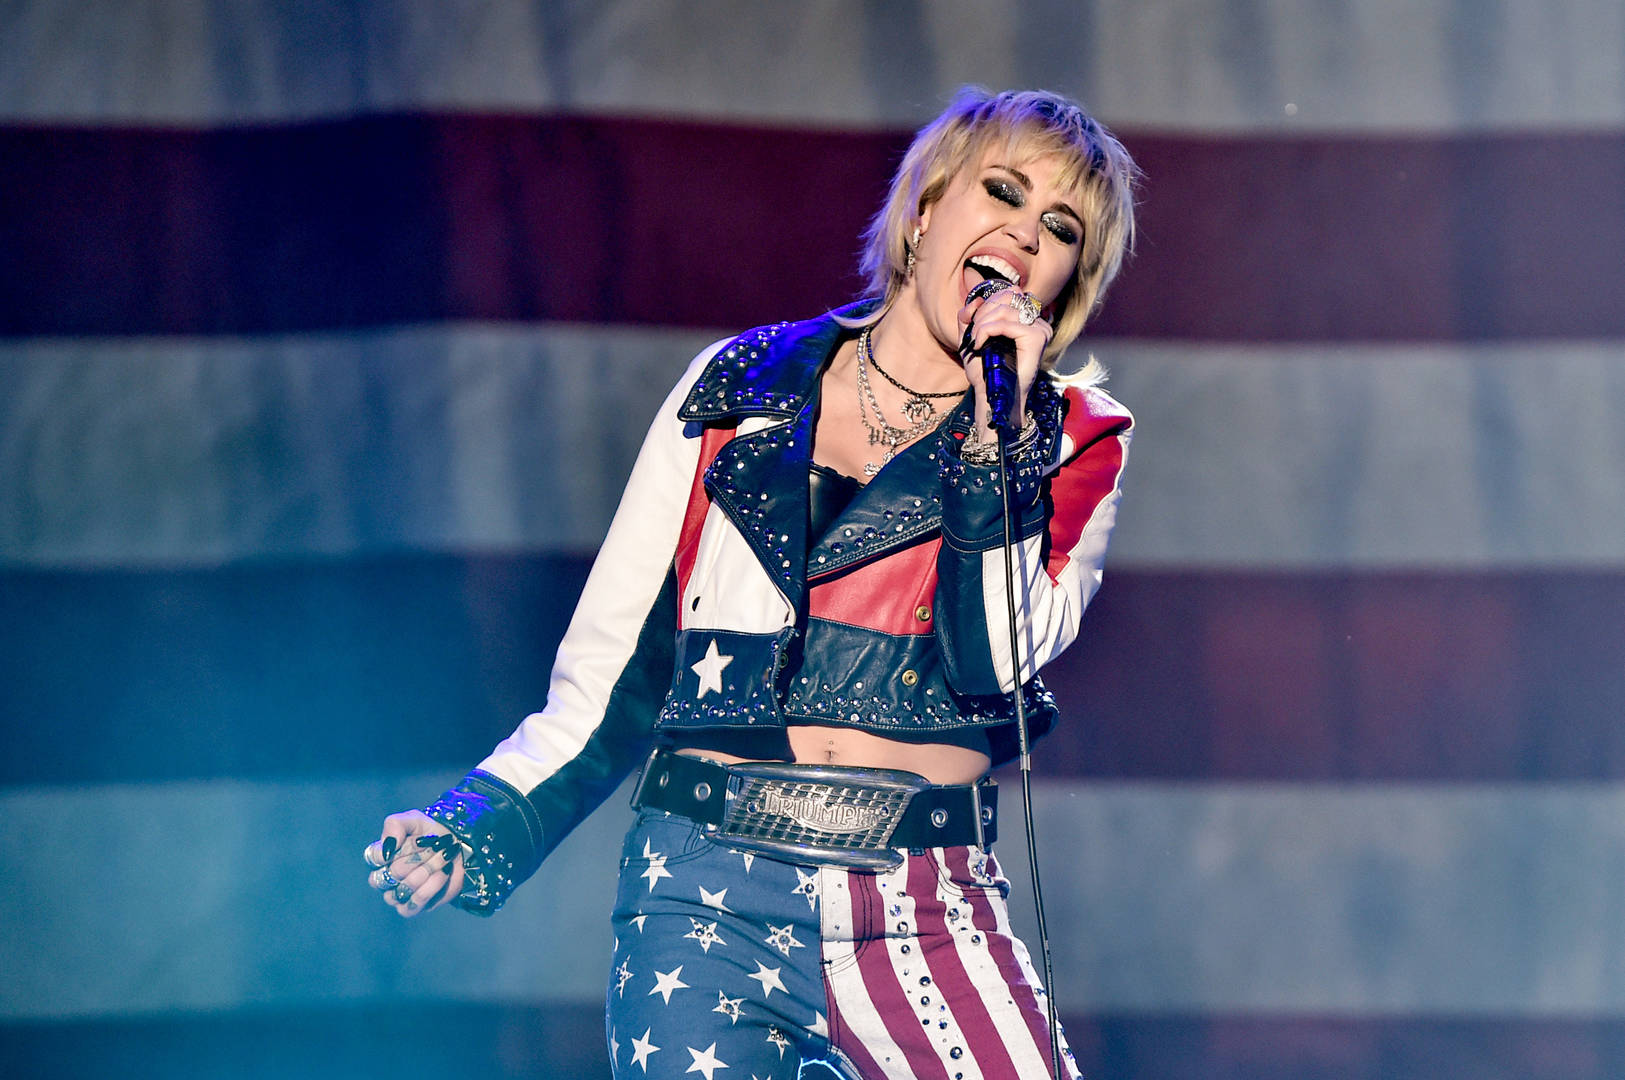 Miley Cyrus announces she will perform for healthcare workers at Super Bowl